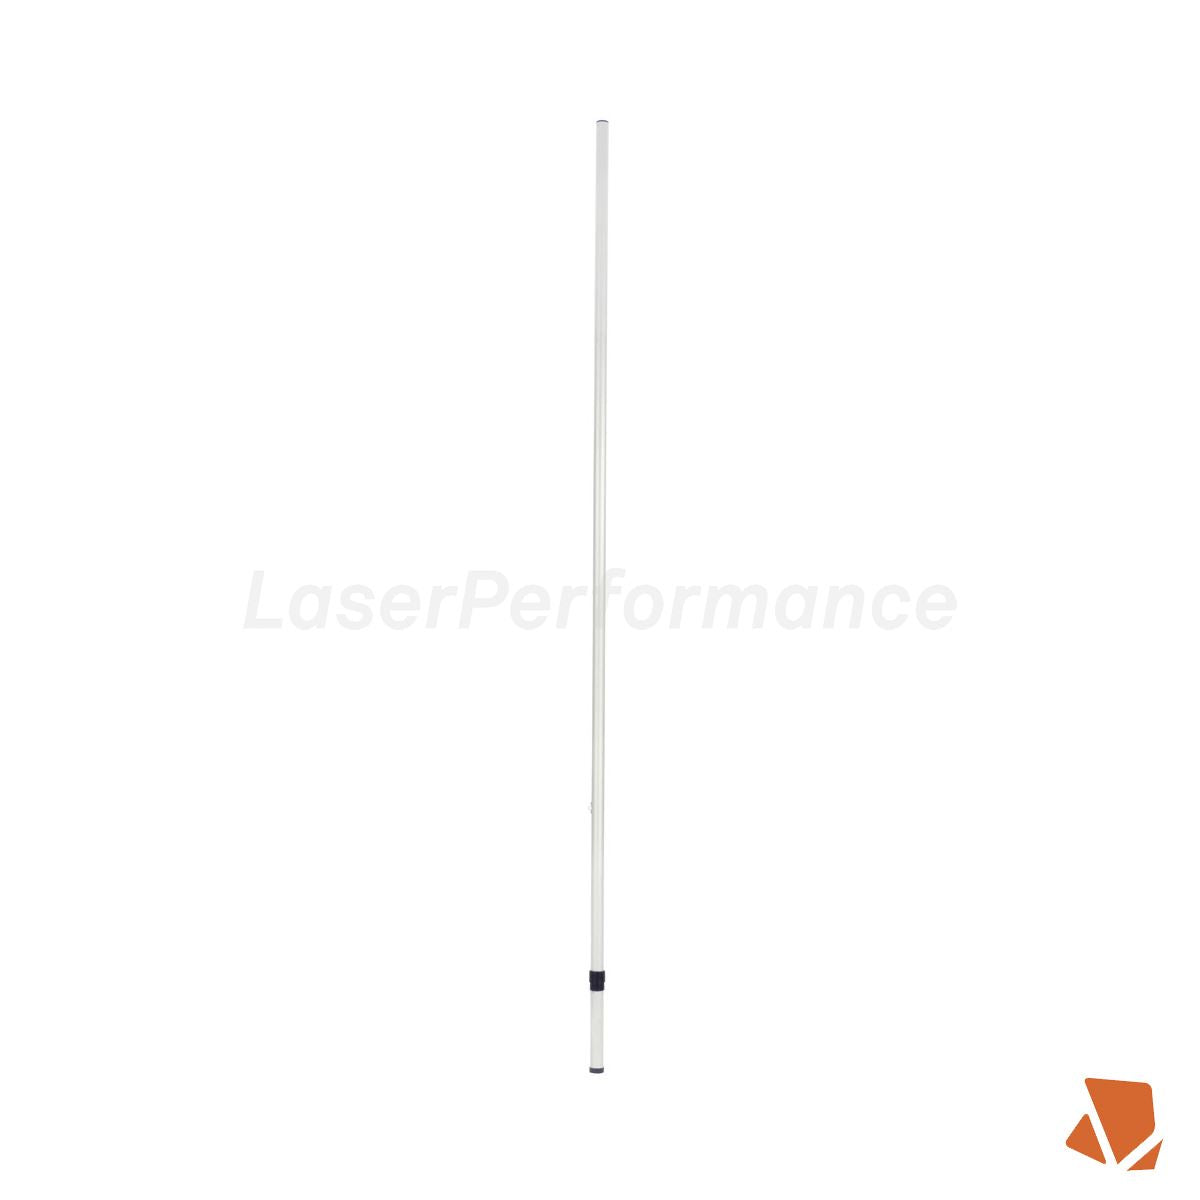 Laser Pico Mast - Top Section